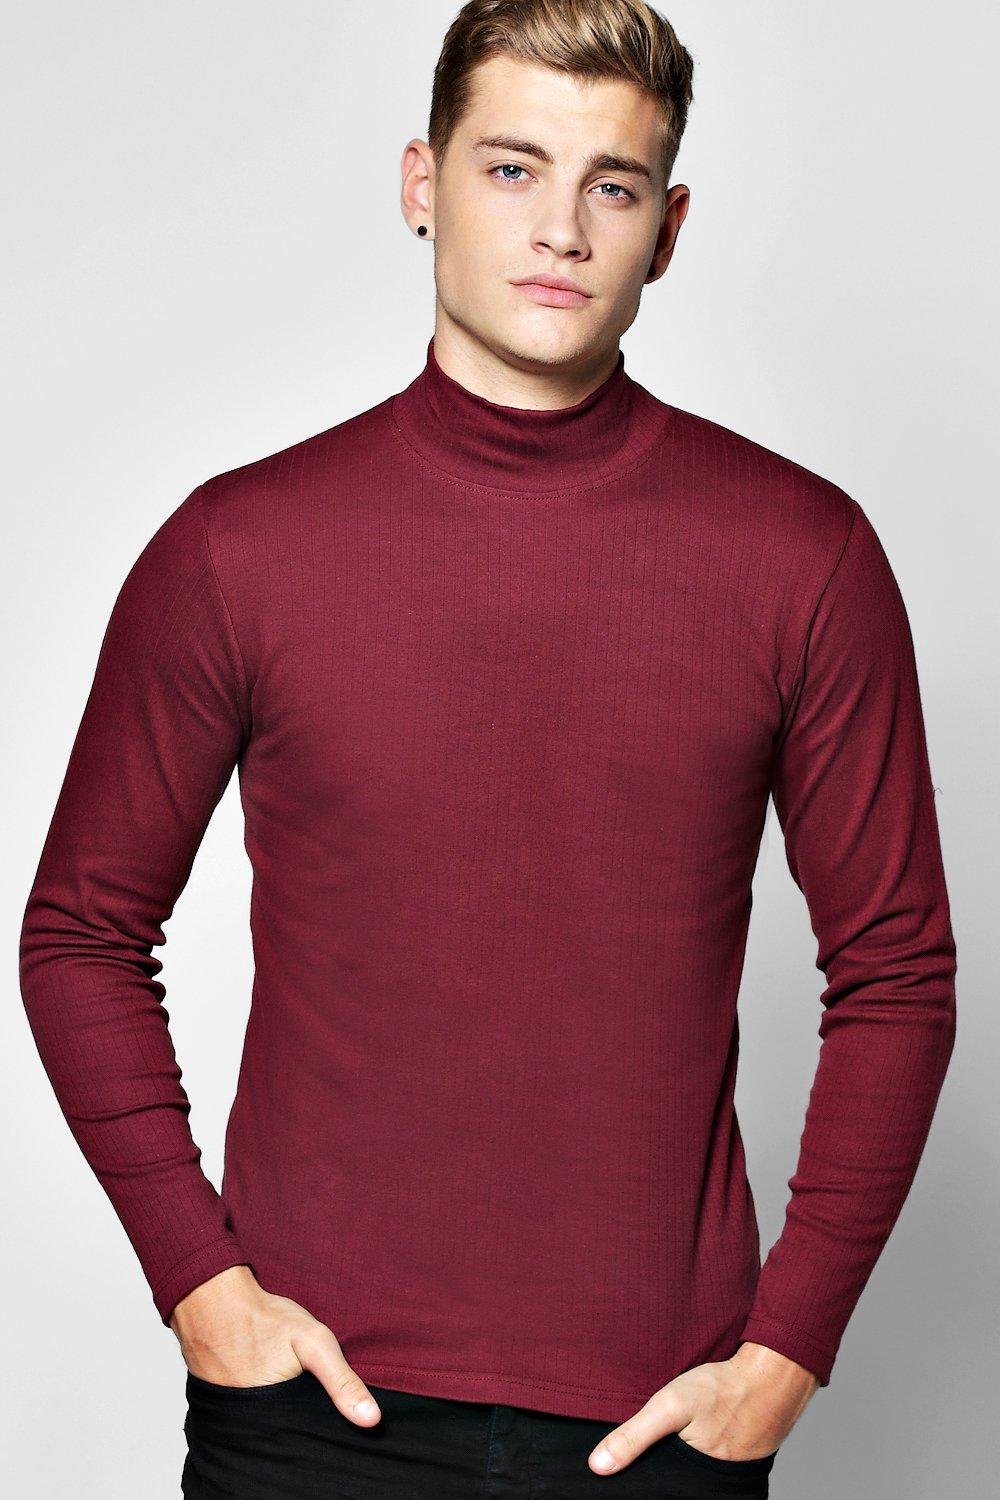 2b21a81157fadc Mens Wine Long Sleeve Muscle Fit Ribbed High Neck T Shirt. Hover to zoom